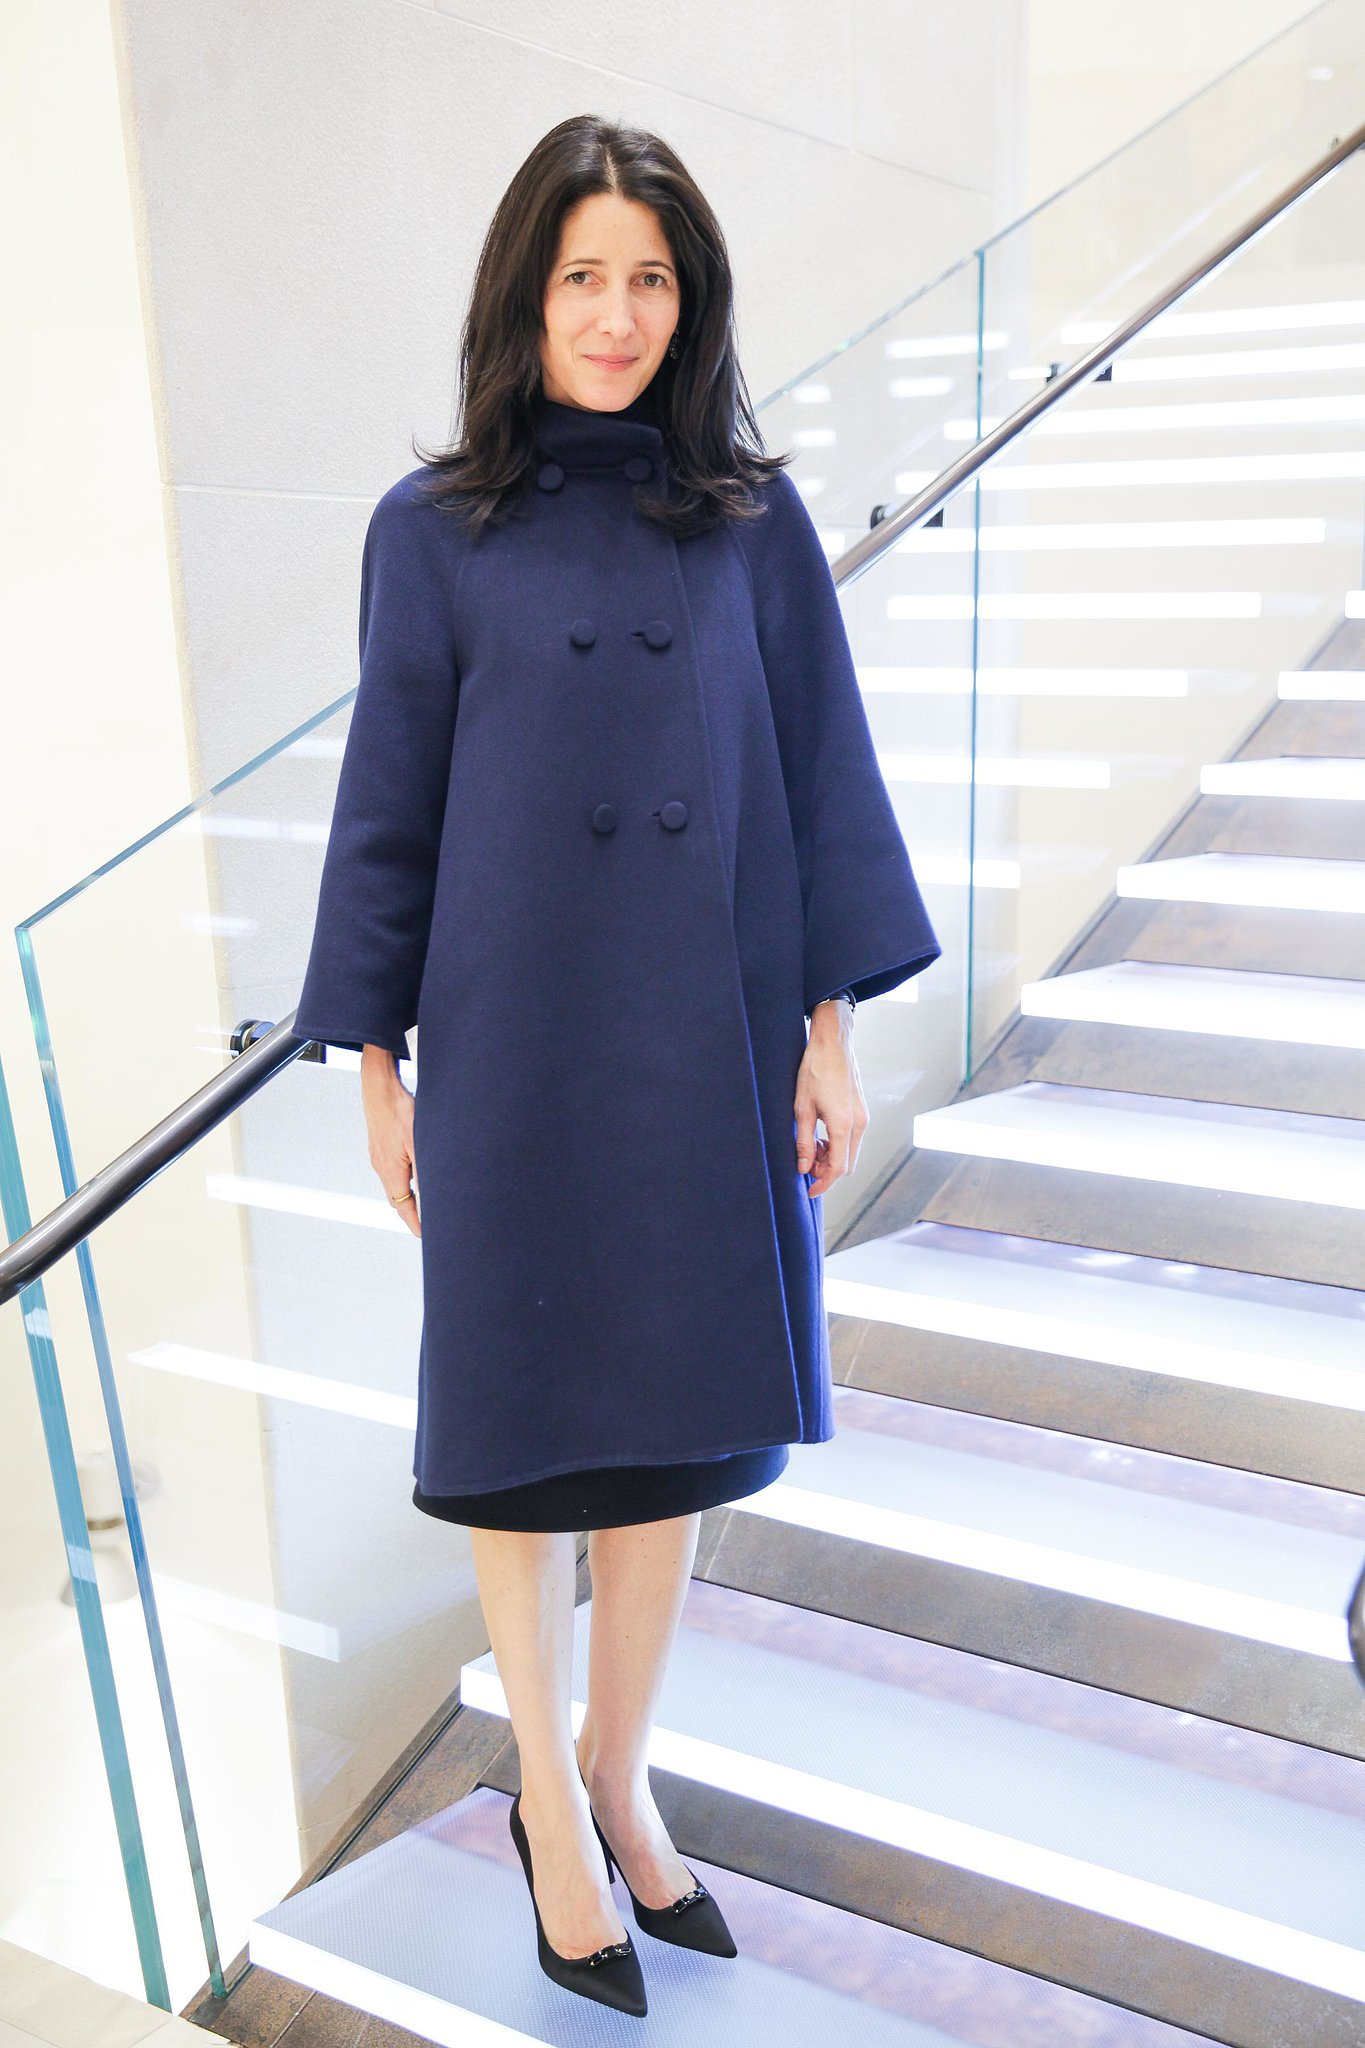 At The Harper's Bazaar Bulgari bash, Amanda Ross looked cozy and stylish in her blue coat.